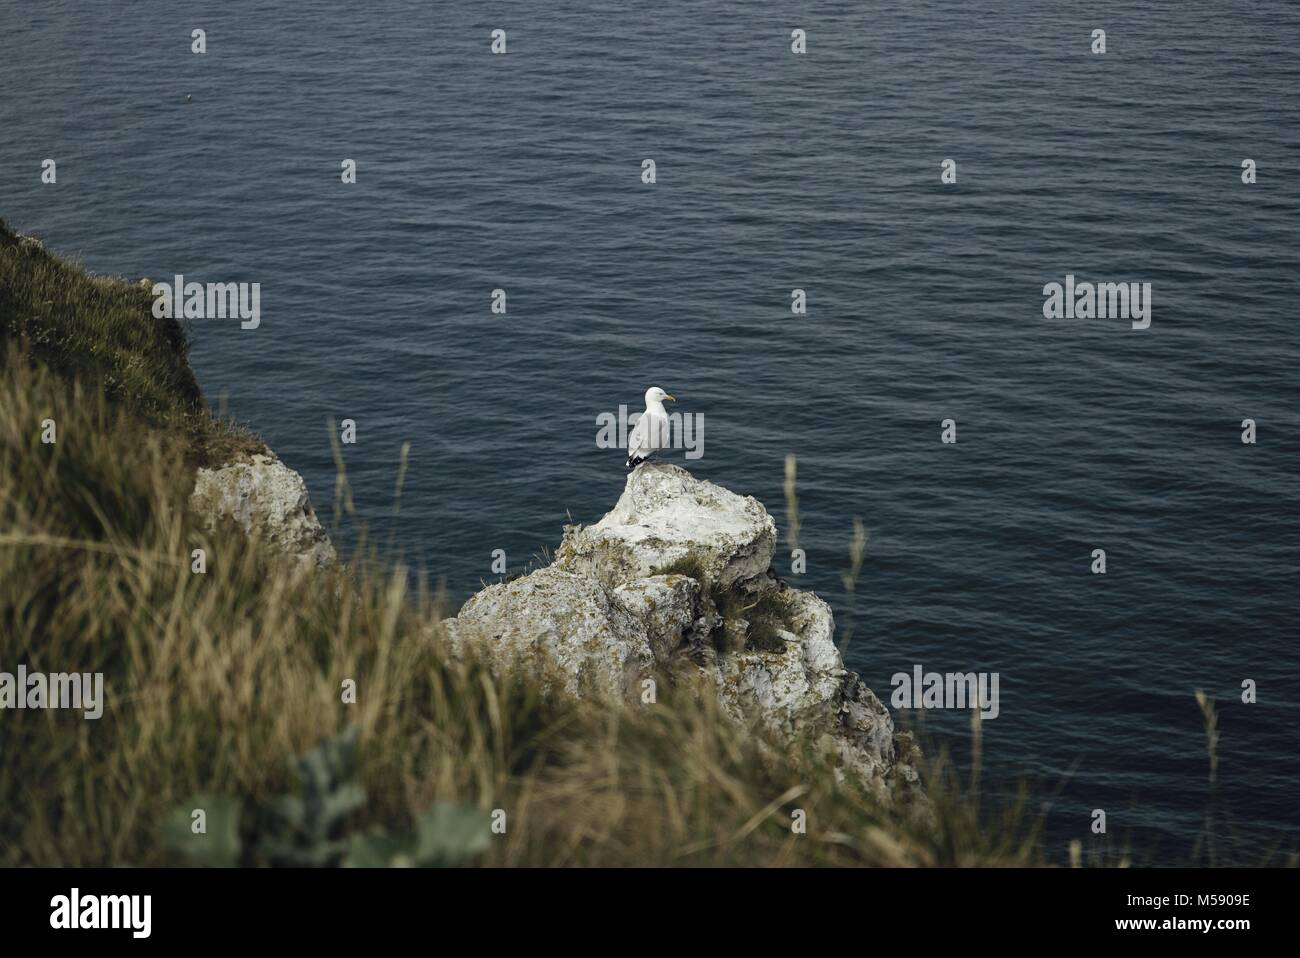 Seagull standing on a rock on top a cliff, with ocean in the background and grass in the foreground - Stock Image